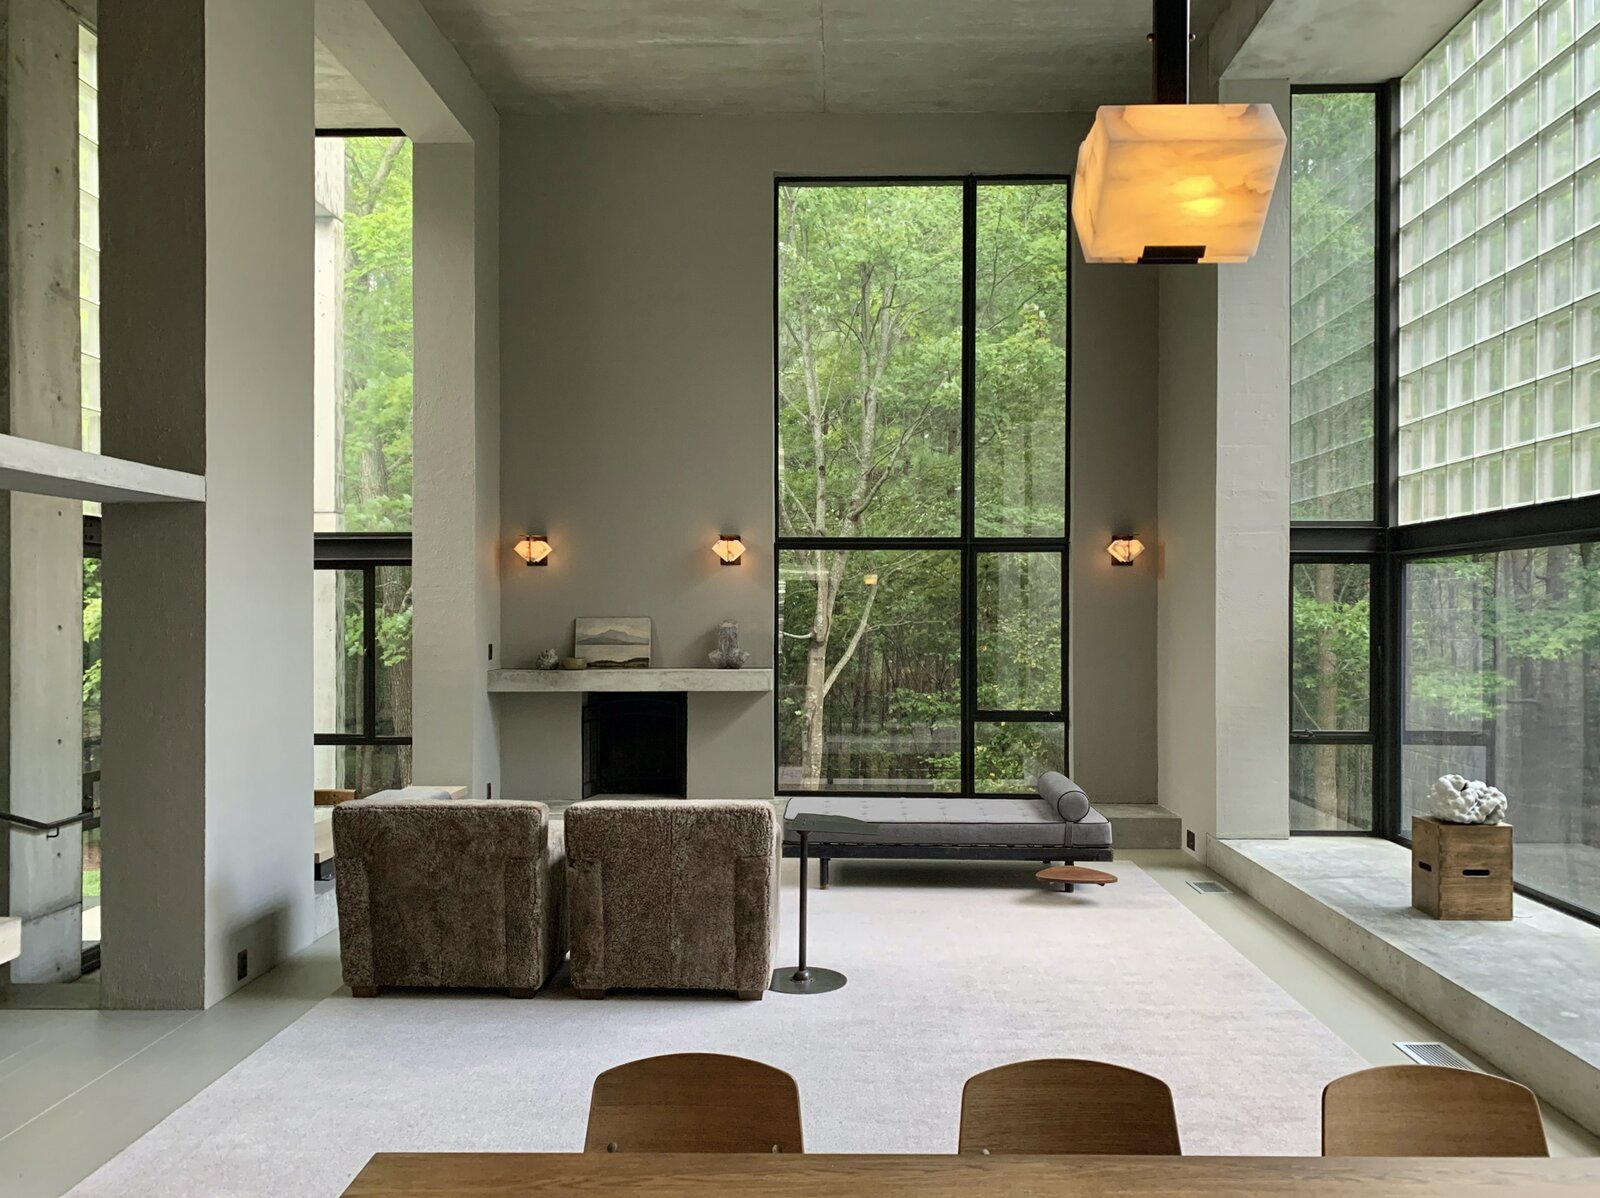 "A look back at the living area shows the massive windows that frame views of the forest. The space also features <span style=""font-family: Theinhardt, -apple-system, BlinkMacSystemFont, &quot;Segoe UI&quot;, Roboto, Oxygen-Sans, Ubuntu, Cantarell, &quot;Helvetica Neue&quot;, sans-serif;"">custom Pierre Chareau alabaster lighting and wood-burning fireplace.</span>  Photo 5 of 12 in Surrounded by a Marshy Forest, This Fortress-Like Home Asks $1.7M in Virginia"